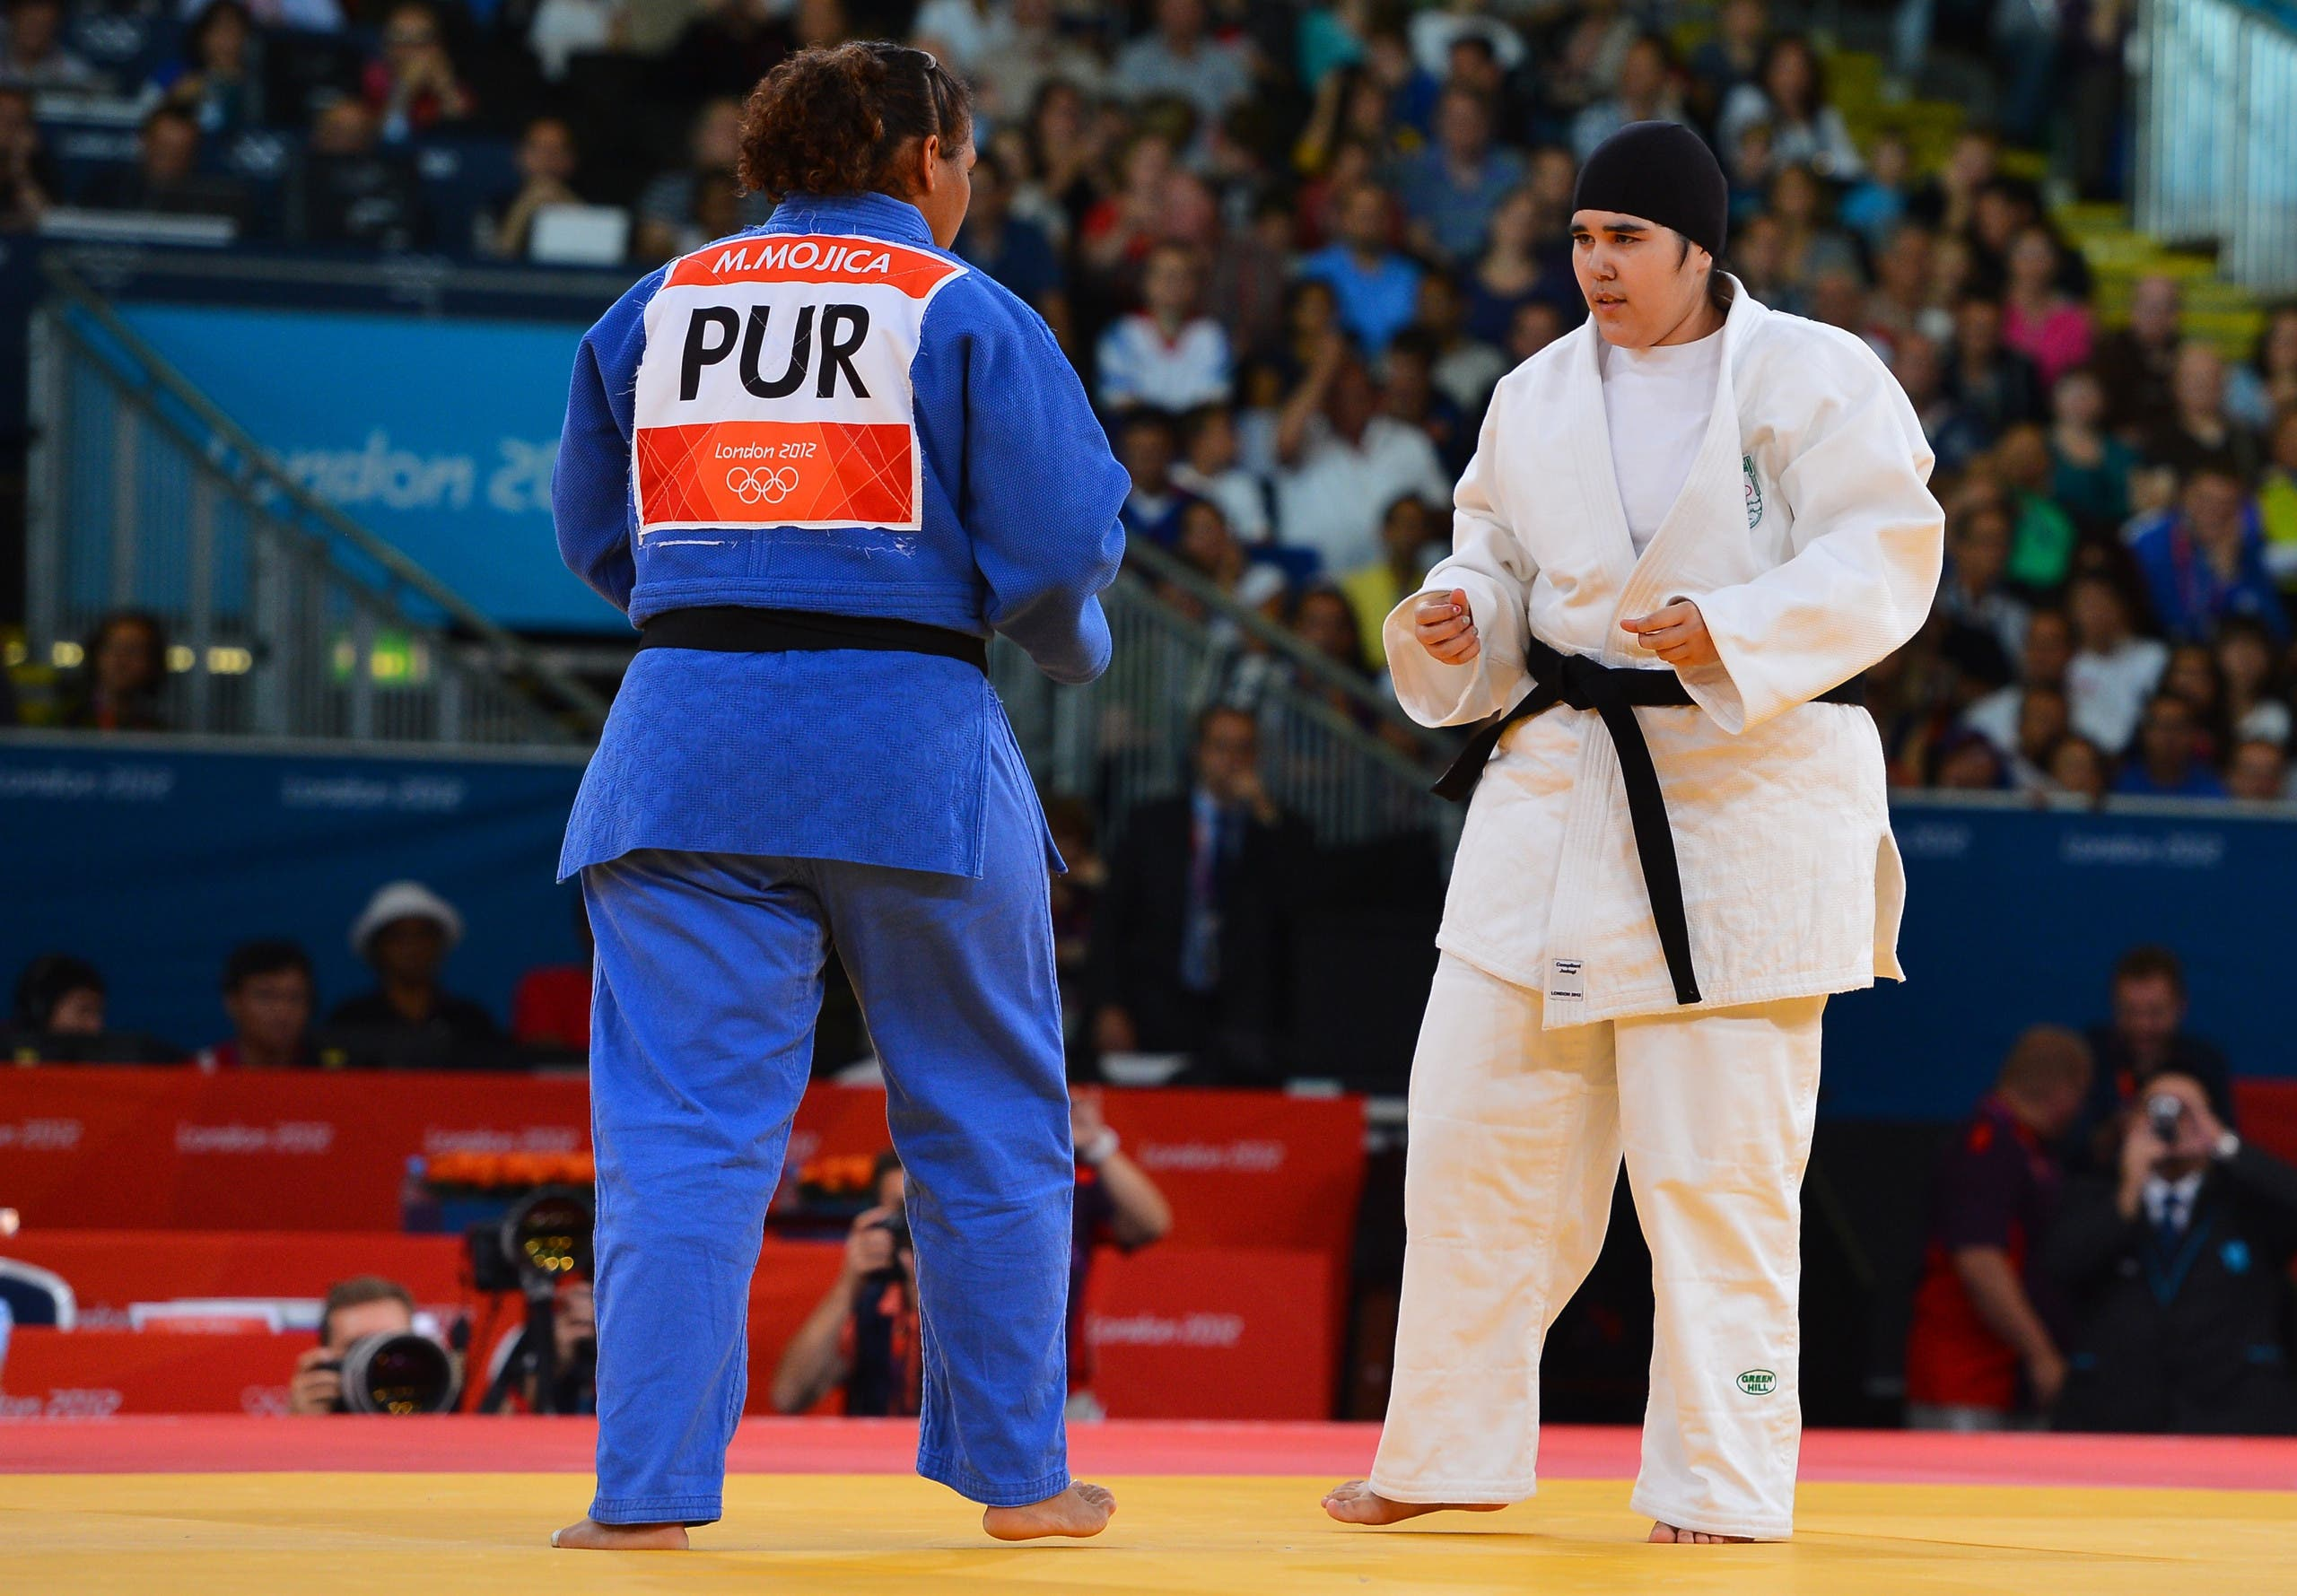 Saudi Arabia's Wojdan Shaherkani (white) competes with Puerto Rico's Melissa Mojica (blue) during their women's +78kg judo contest match of the London 2012 Olympic Games on August 3, 2012 at the ExCel arena in London. (AFP)